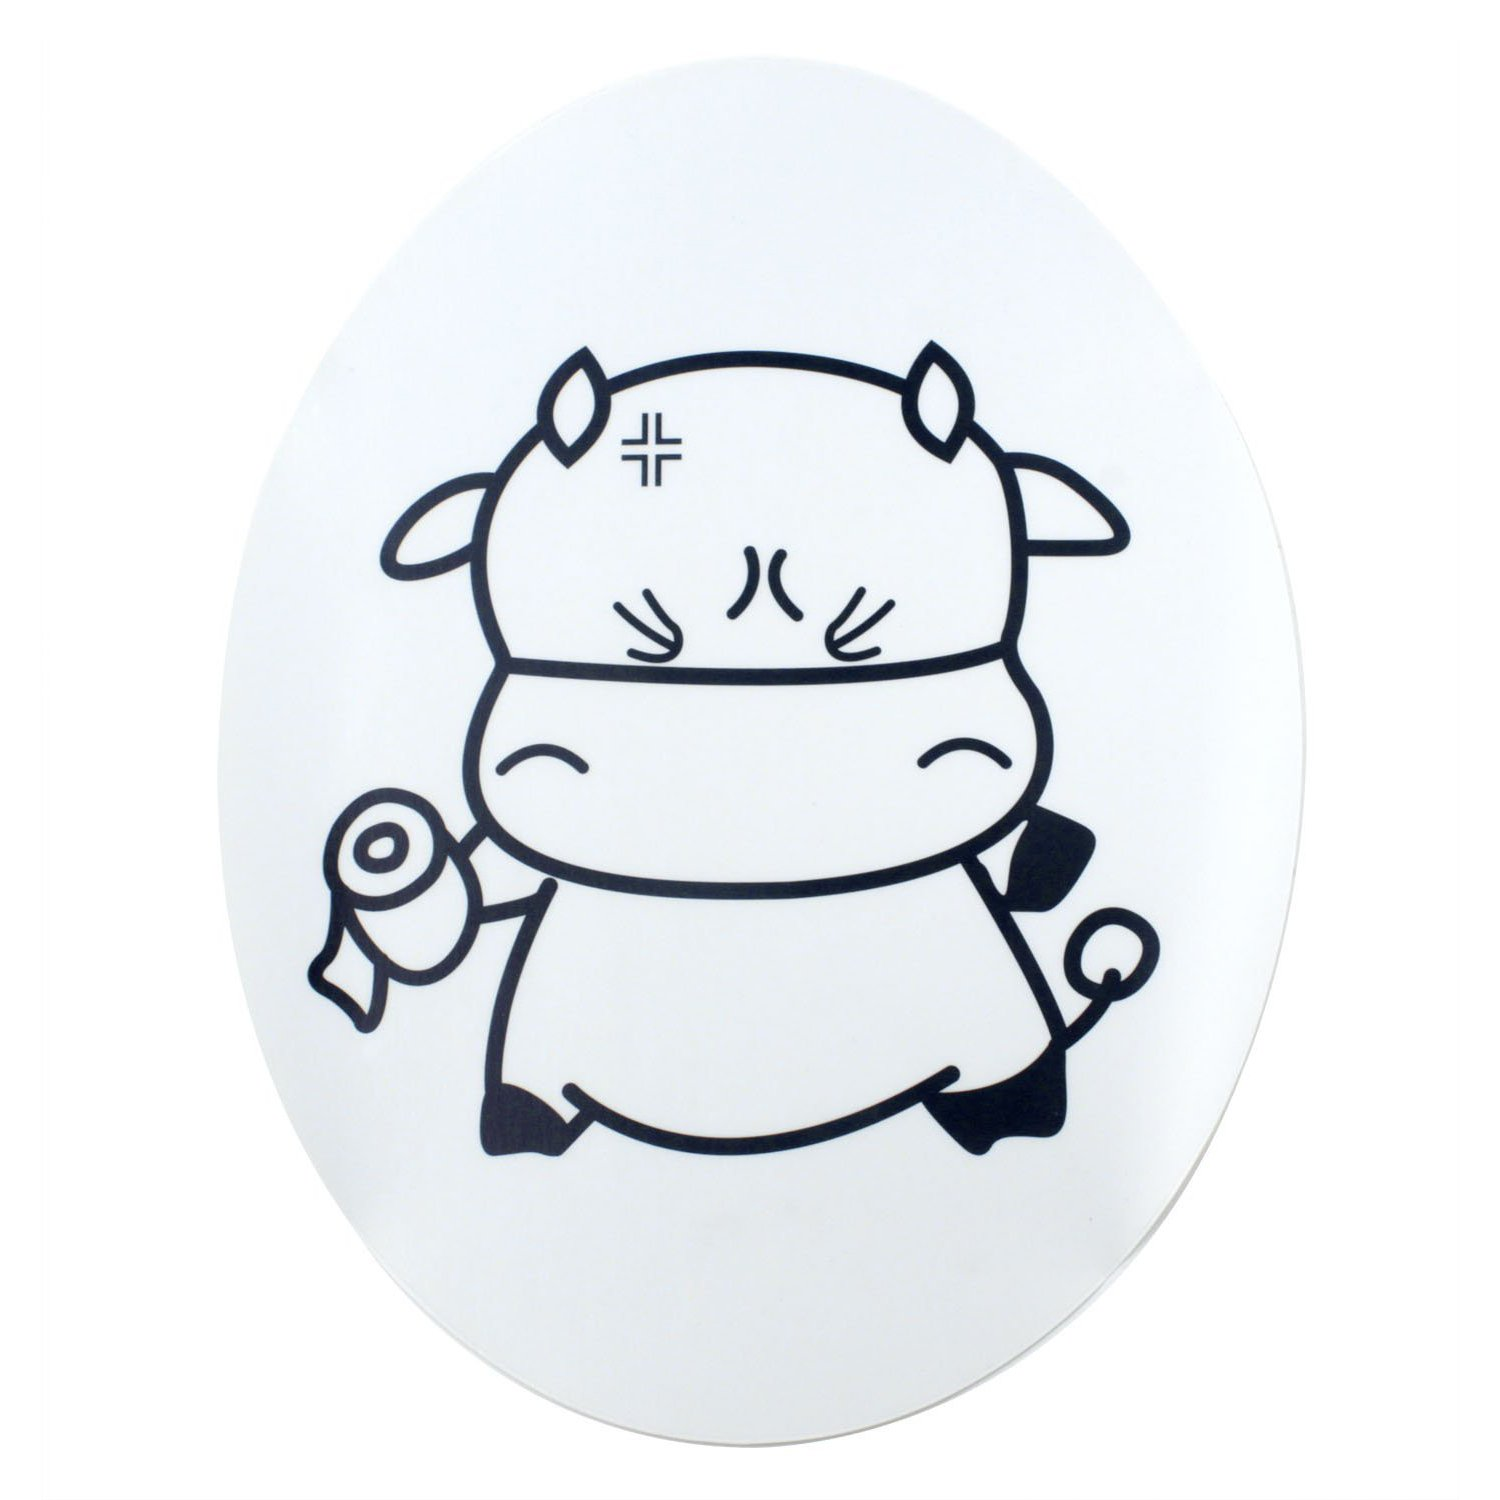 TOOGOO(R) Sweet Cow Toilet Seat Cover Decal Sticker by TOOGOO(R) (Image #1)